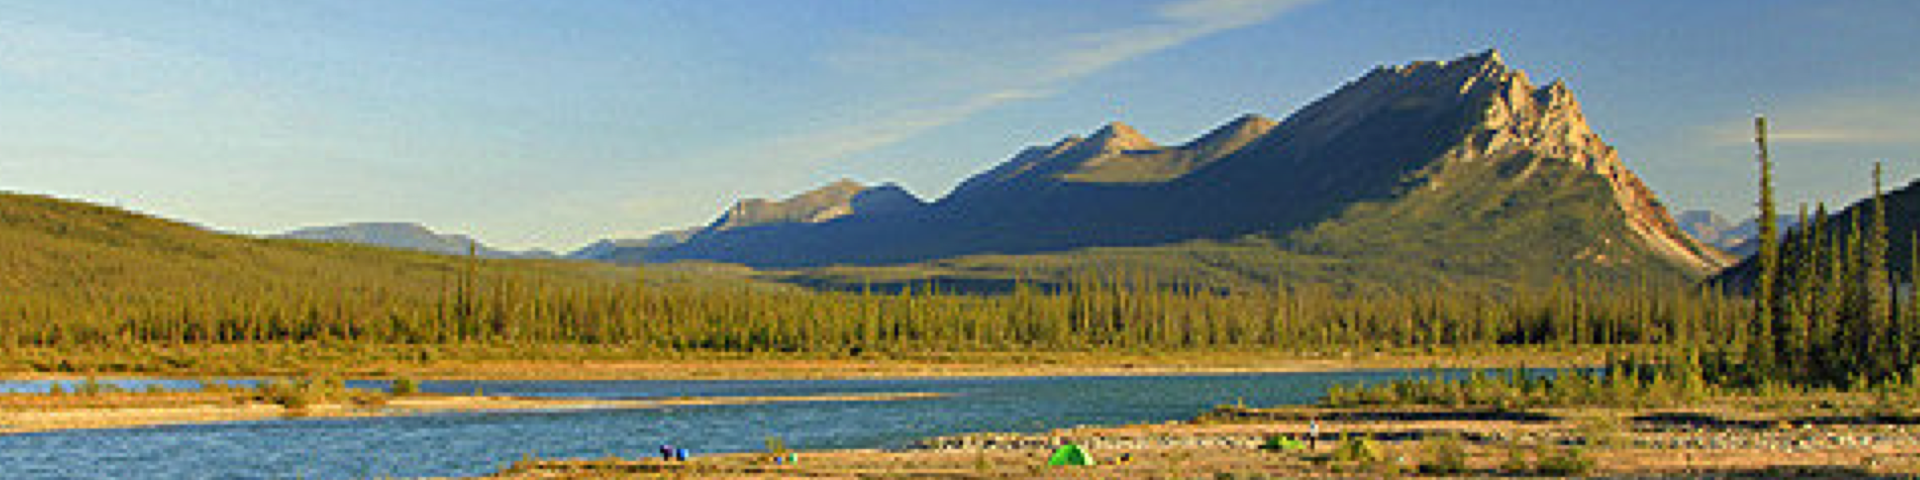 Snake River Canoeing by Wanapitei Canoe Expeditions - Image 99